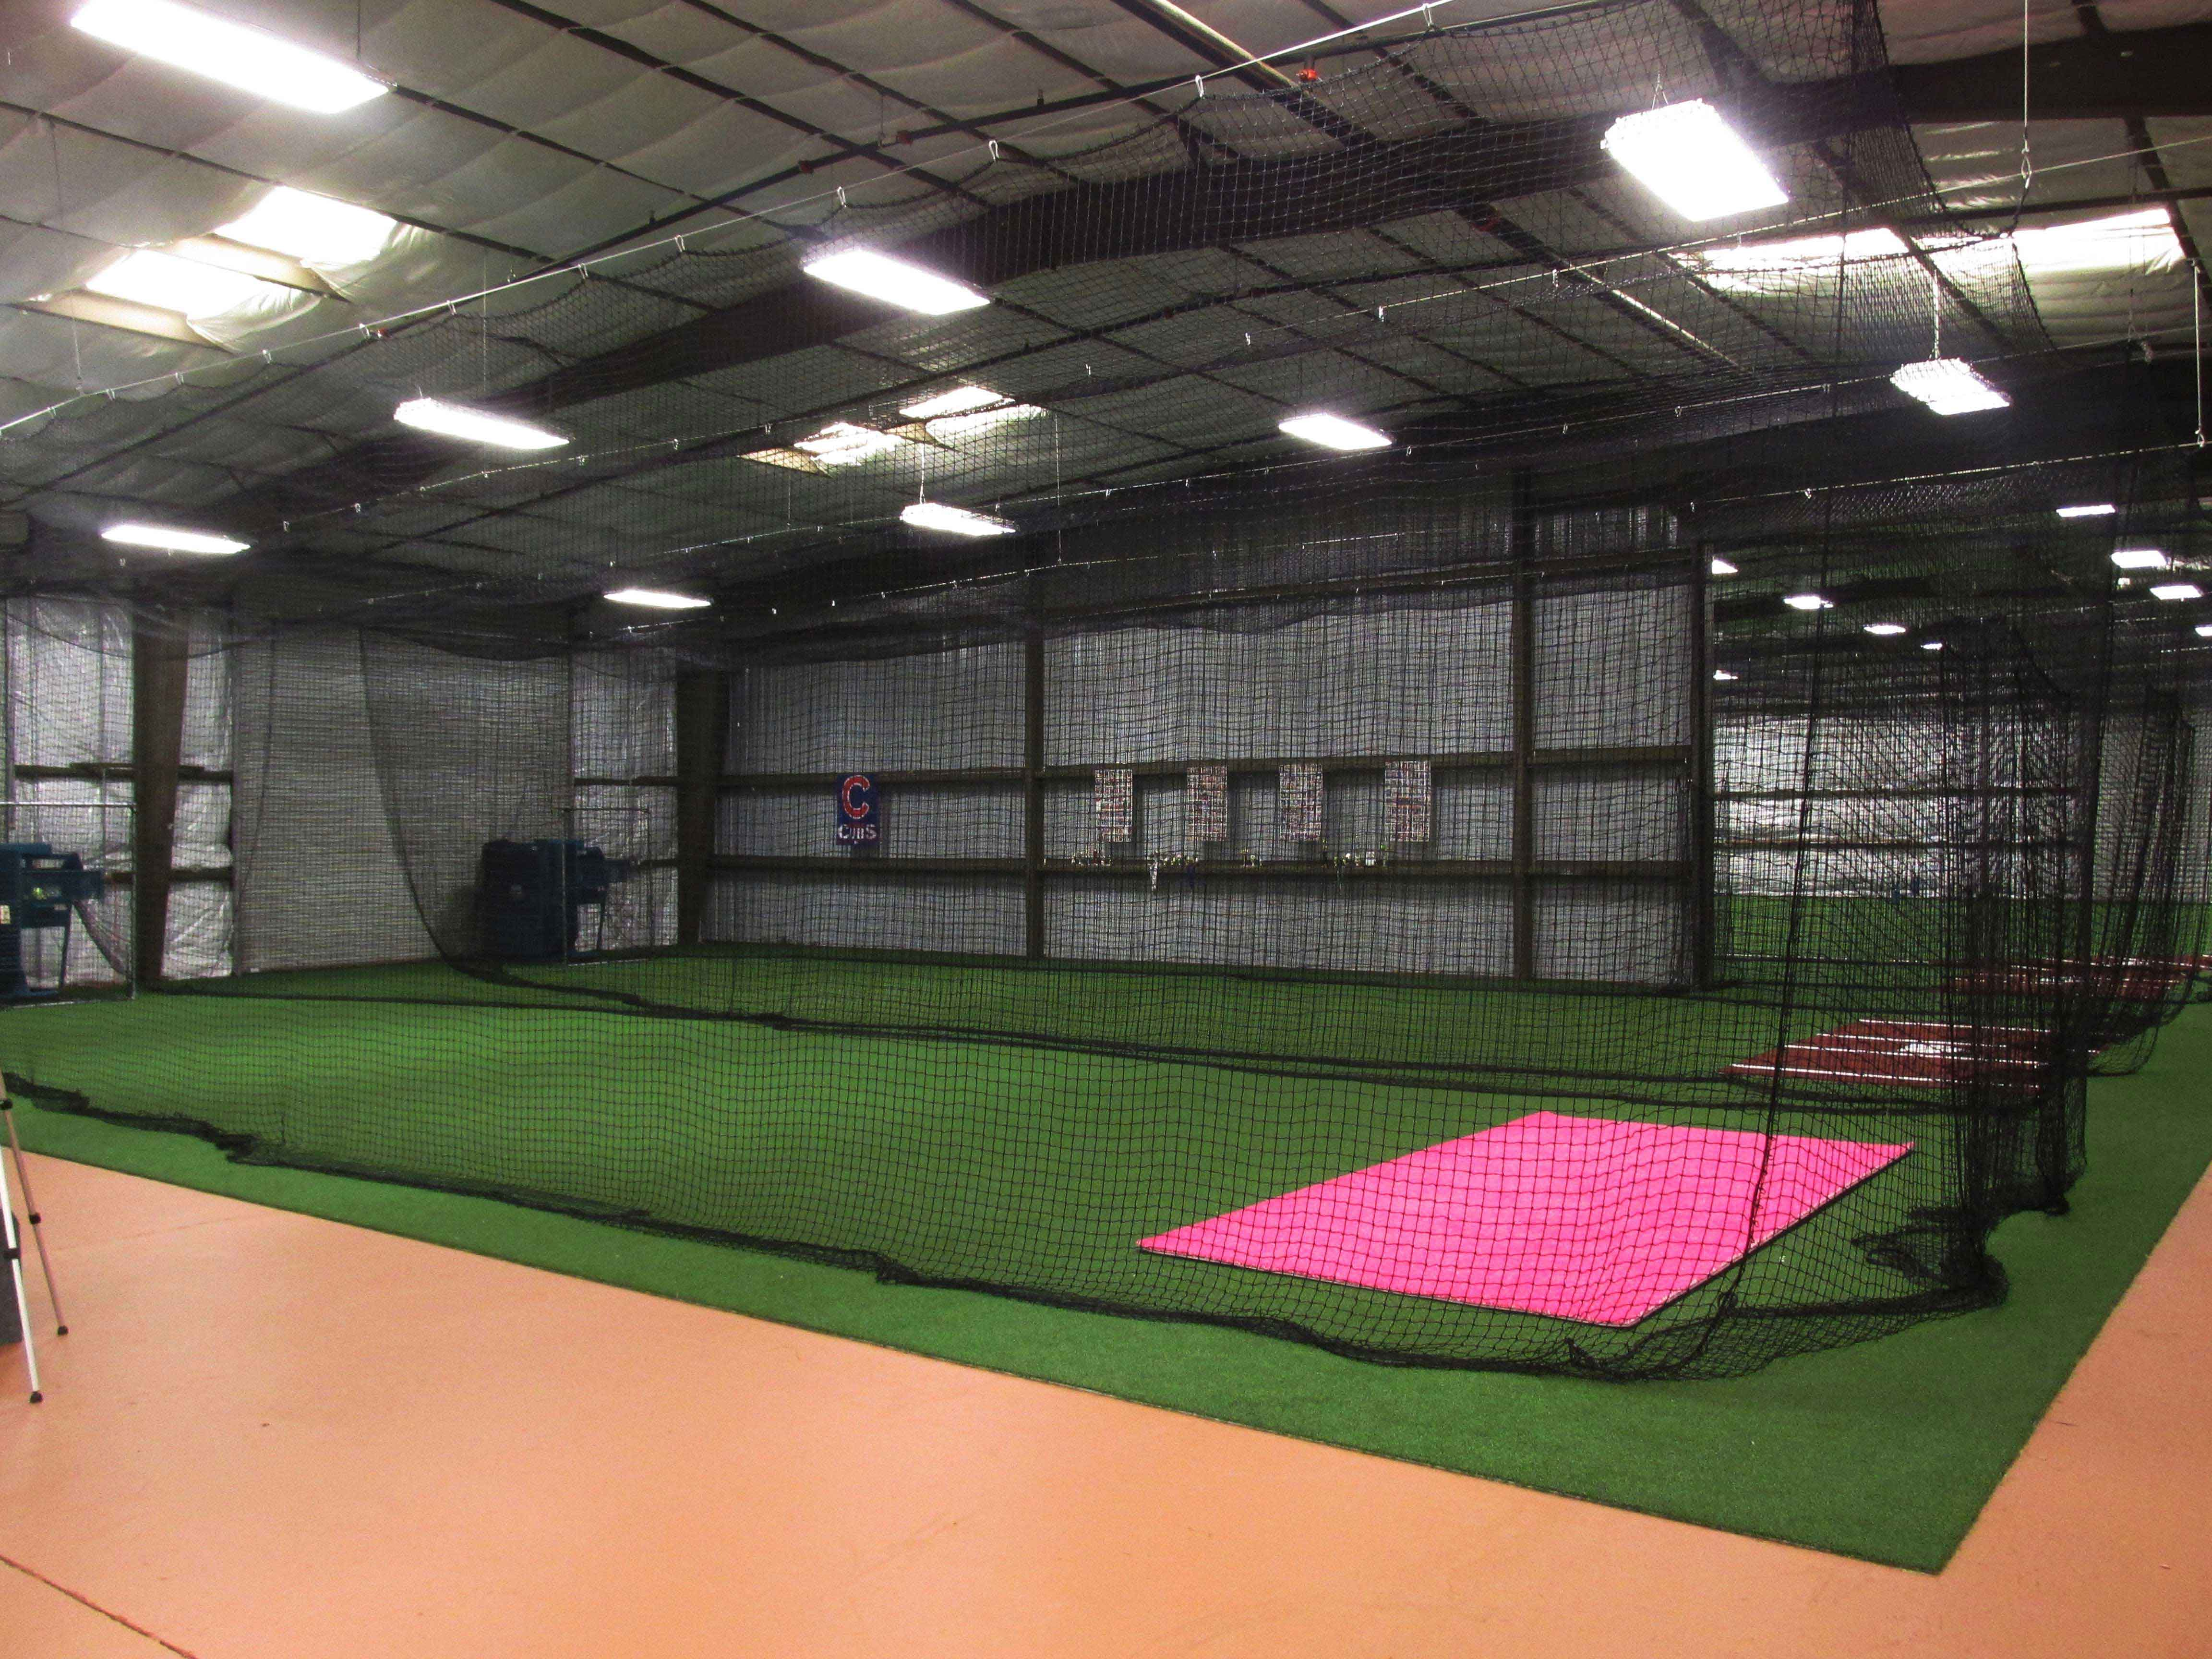 Commercial Remodeling Services - Image of a batting cage